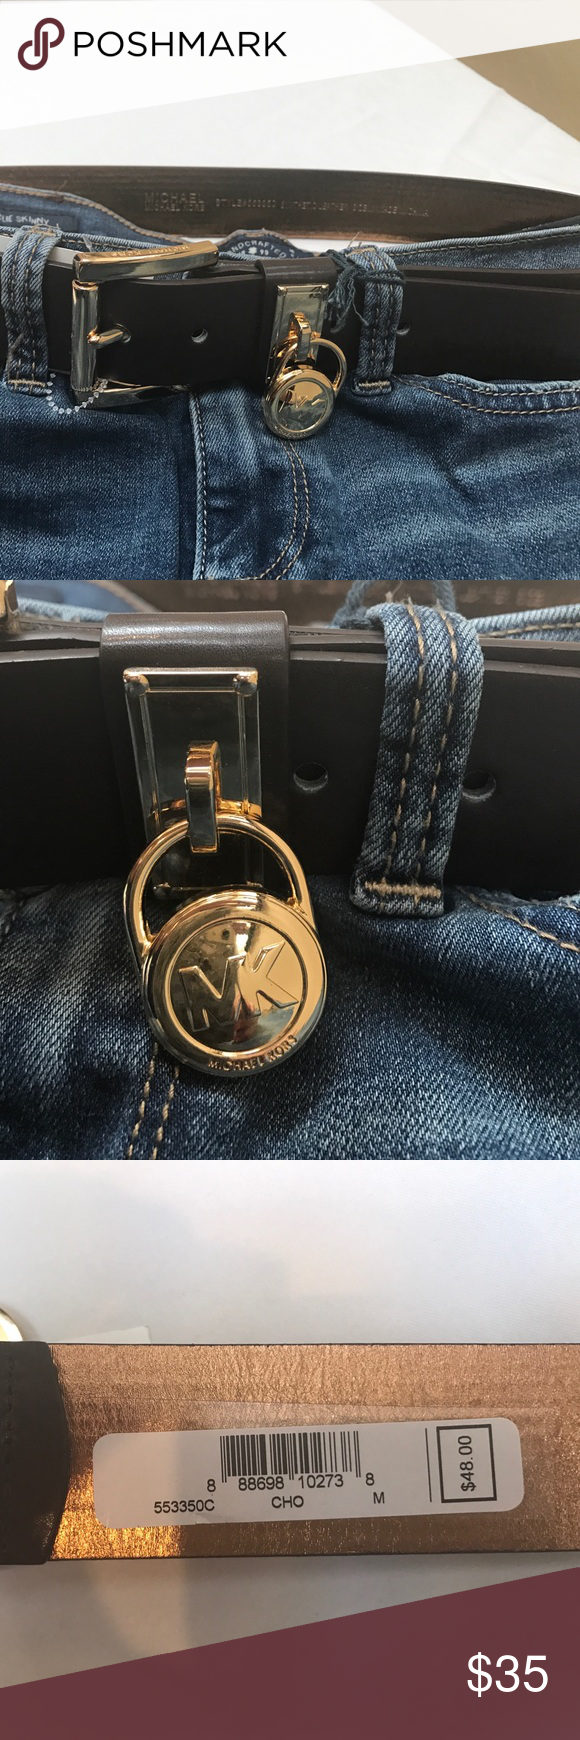 """MK brown belt 1 1/2"""" wide belt 41"""" long all leather with gold hardware Michael Kors Accessories Belts"""